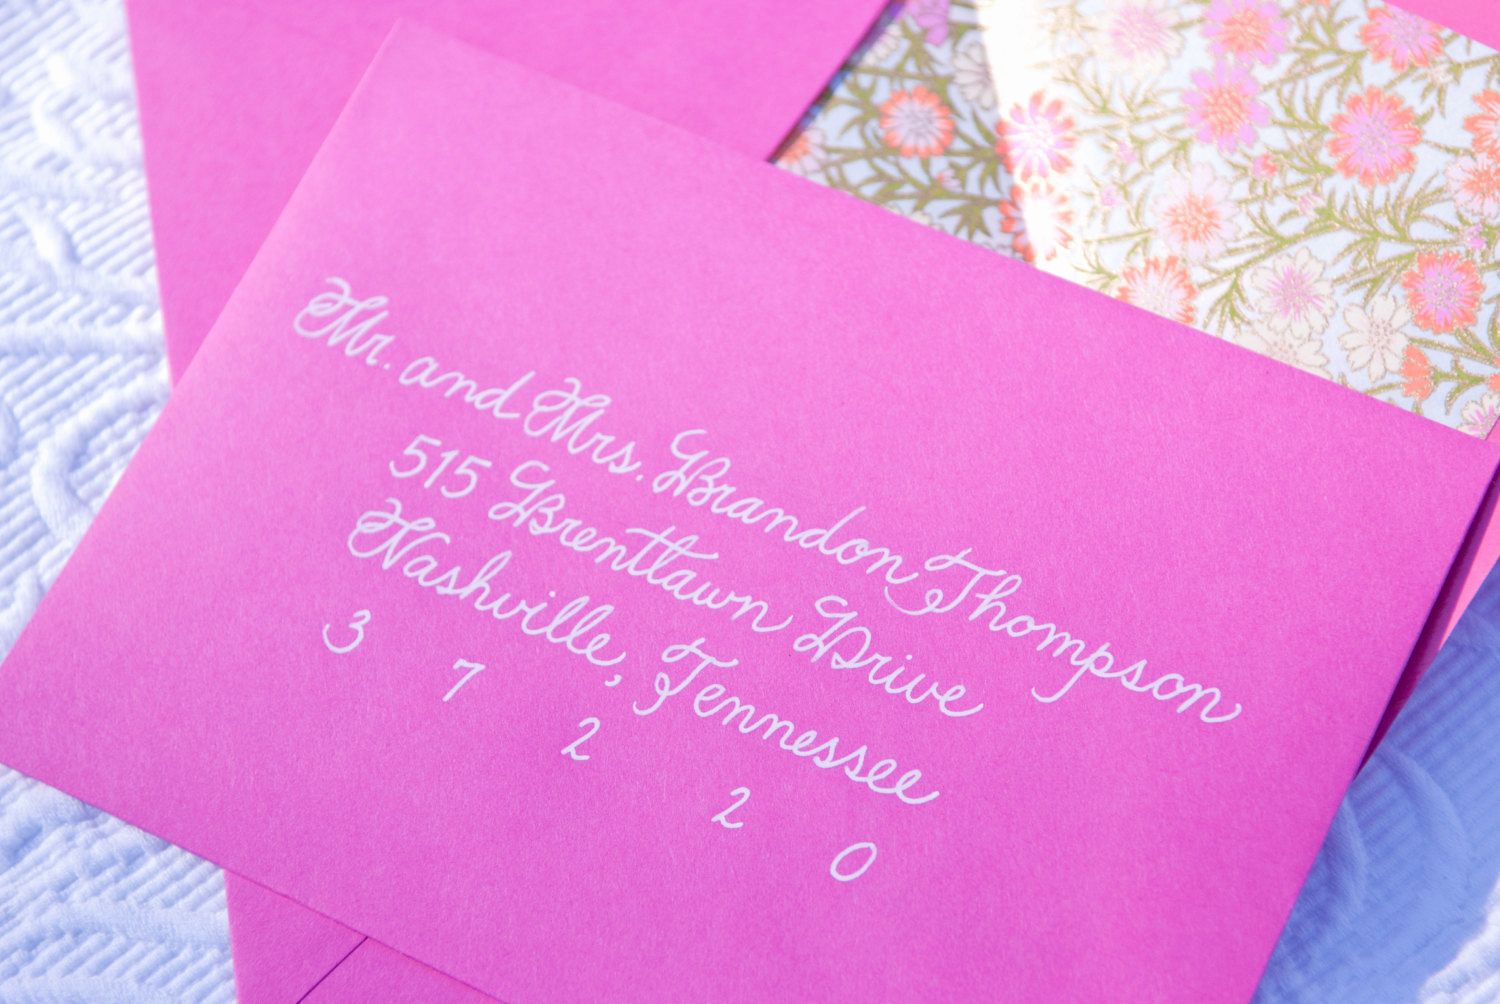 Fonts for Wedding Invitation Envelopes Beautiful Custom Handwritten Wedding Calligraphy for Invitation Envelope